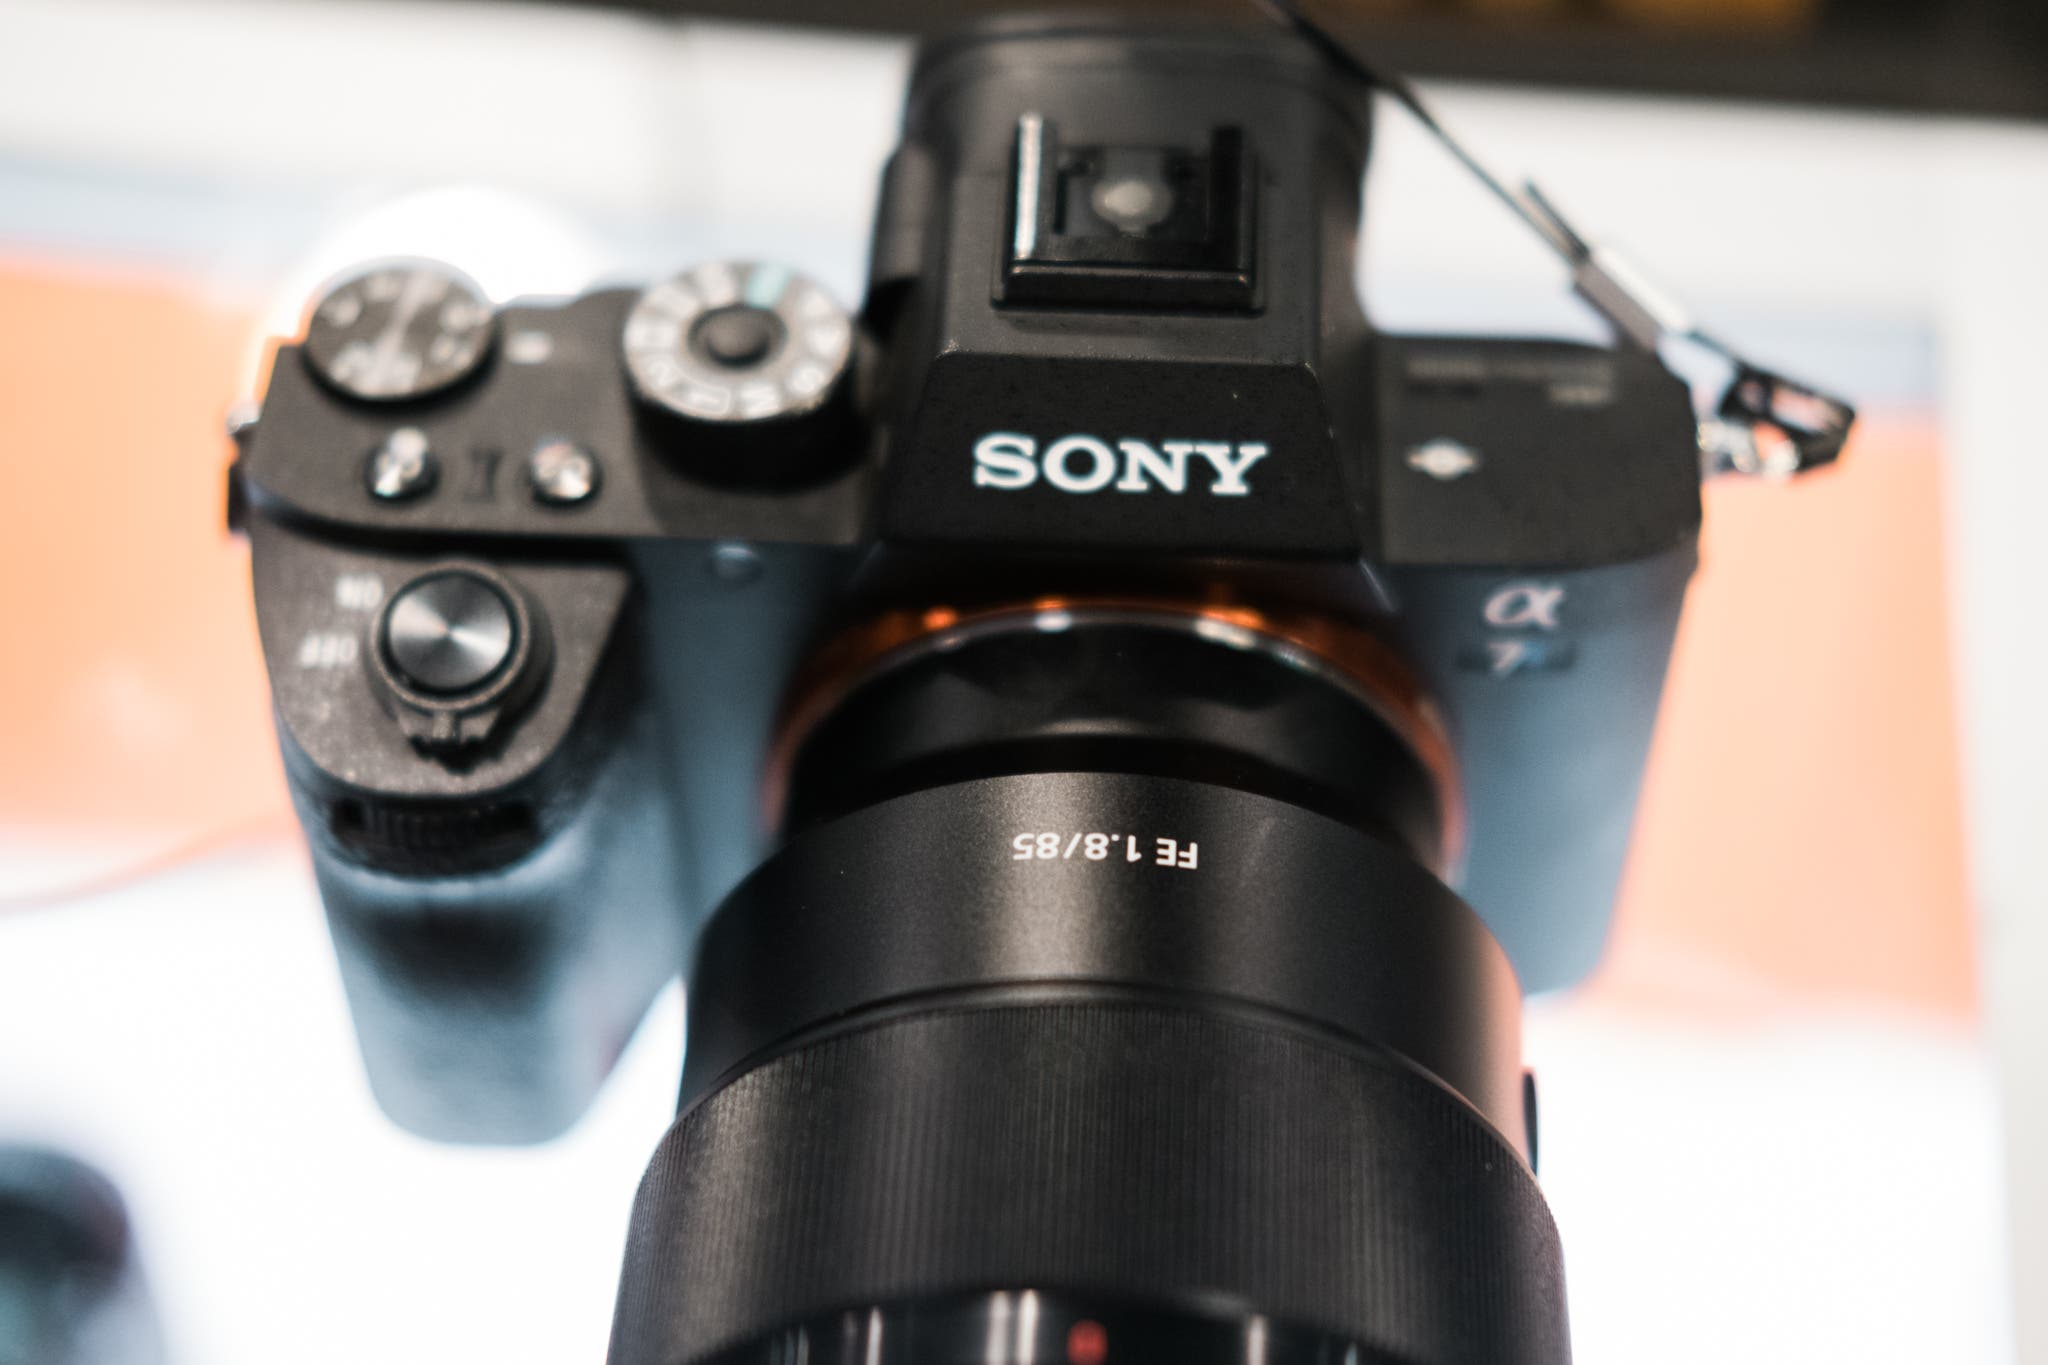 First Samples: Sony 85mm f1.8 FE and Sony 100mm f2.8 STM G Master FE